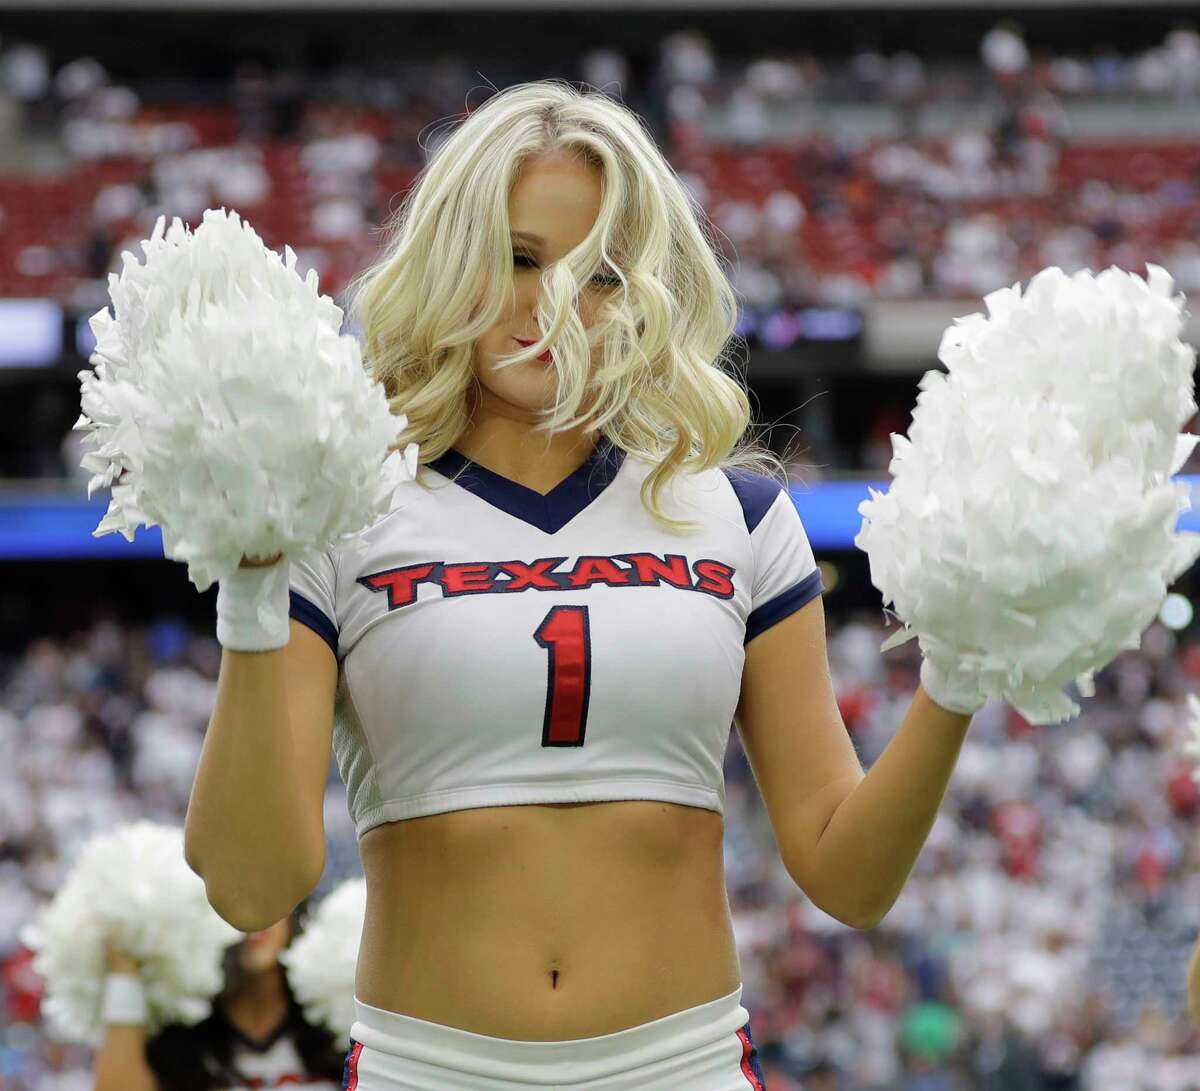 The Houston Texans cheerleaders perform prior to an NFL football game Sunday, Sept. 10, 2017, in Houston. (AP Photo/David J. Phillip)